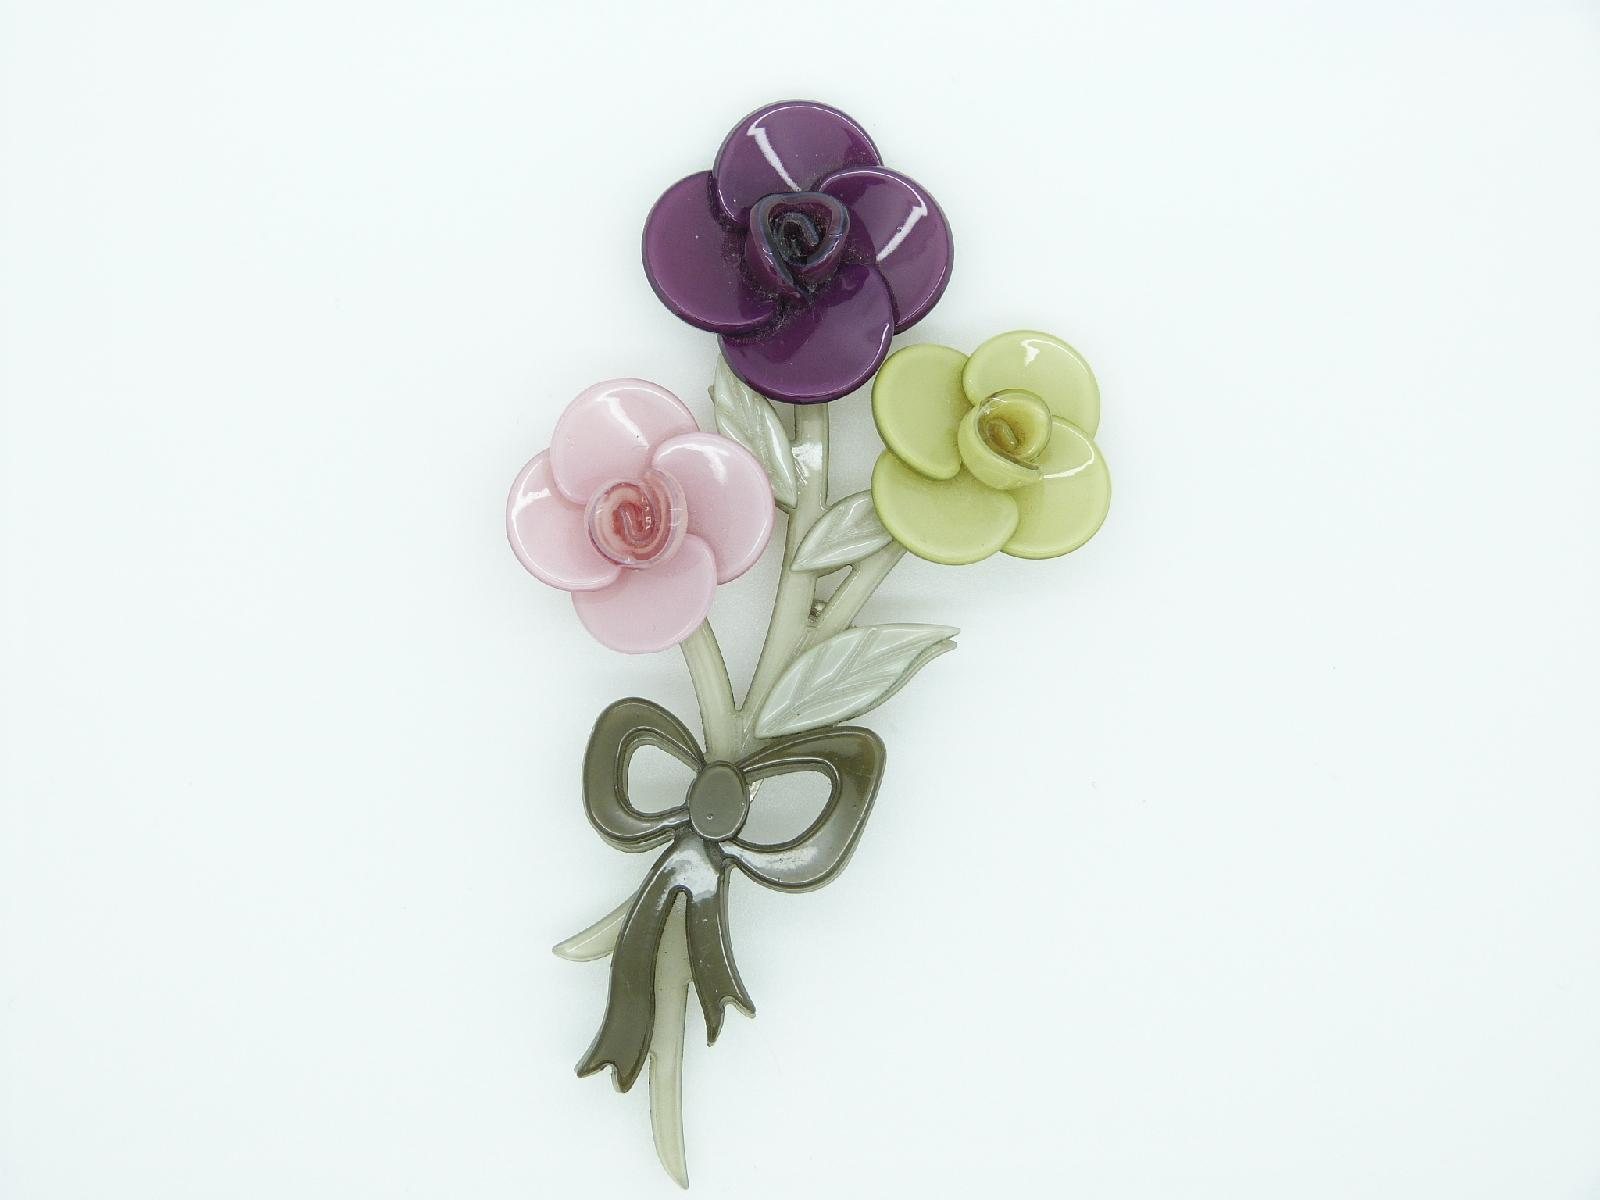 £13.00 - Fabulous Big Baby Posey Of Roses Brooch Pink Purple and Green Flowers